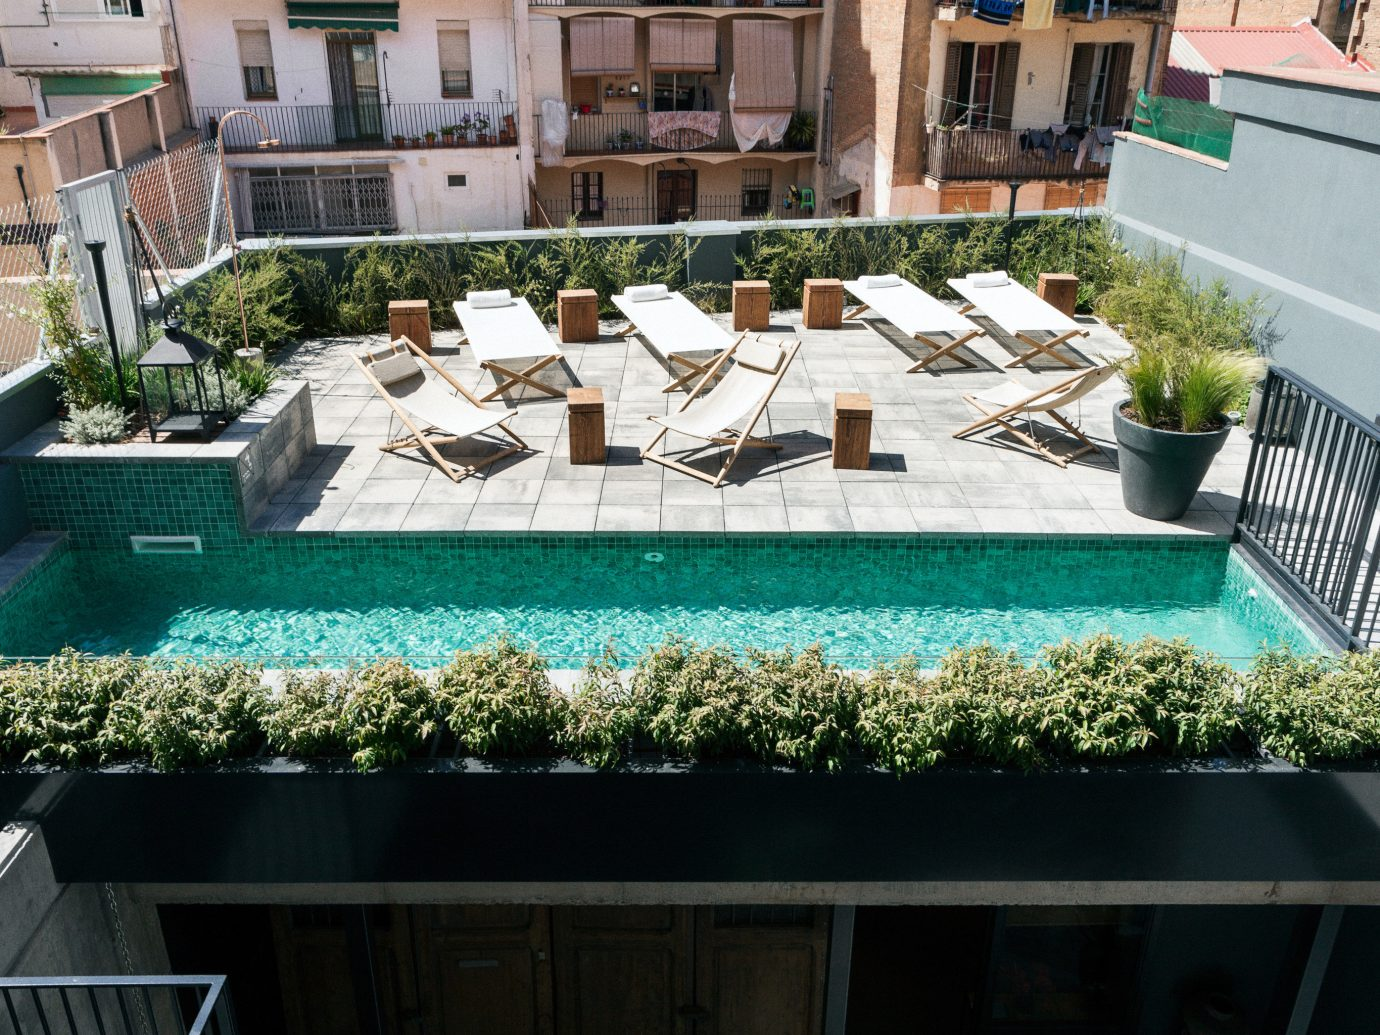 Barcelona Hotels Spain property outdoor swimming pool Courtyard condominium real estate outdoor structure house roof backyard apartment leisure landscaping amenity